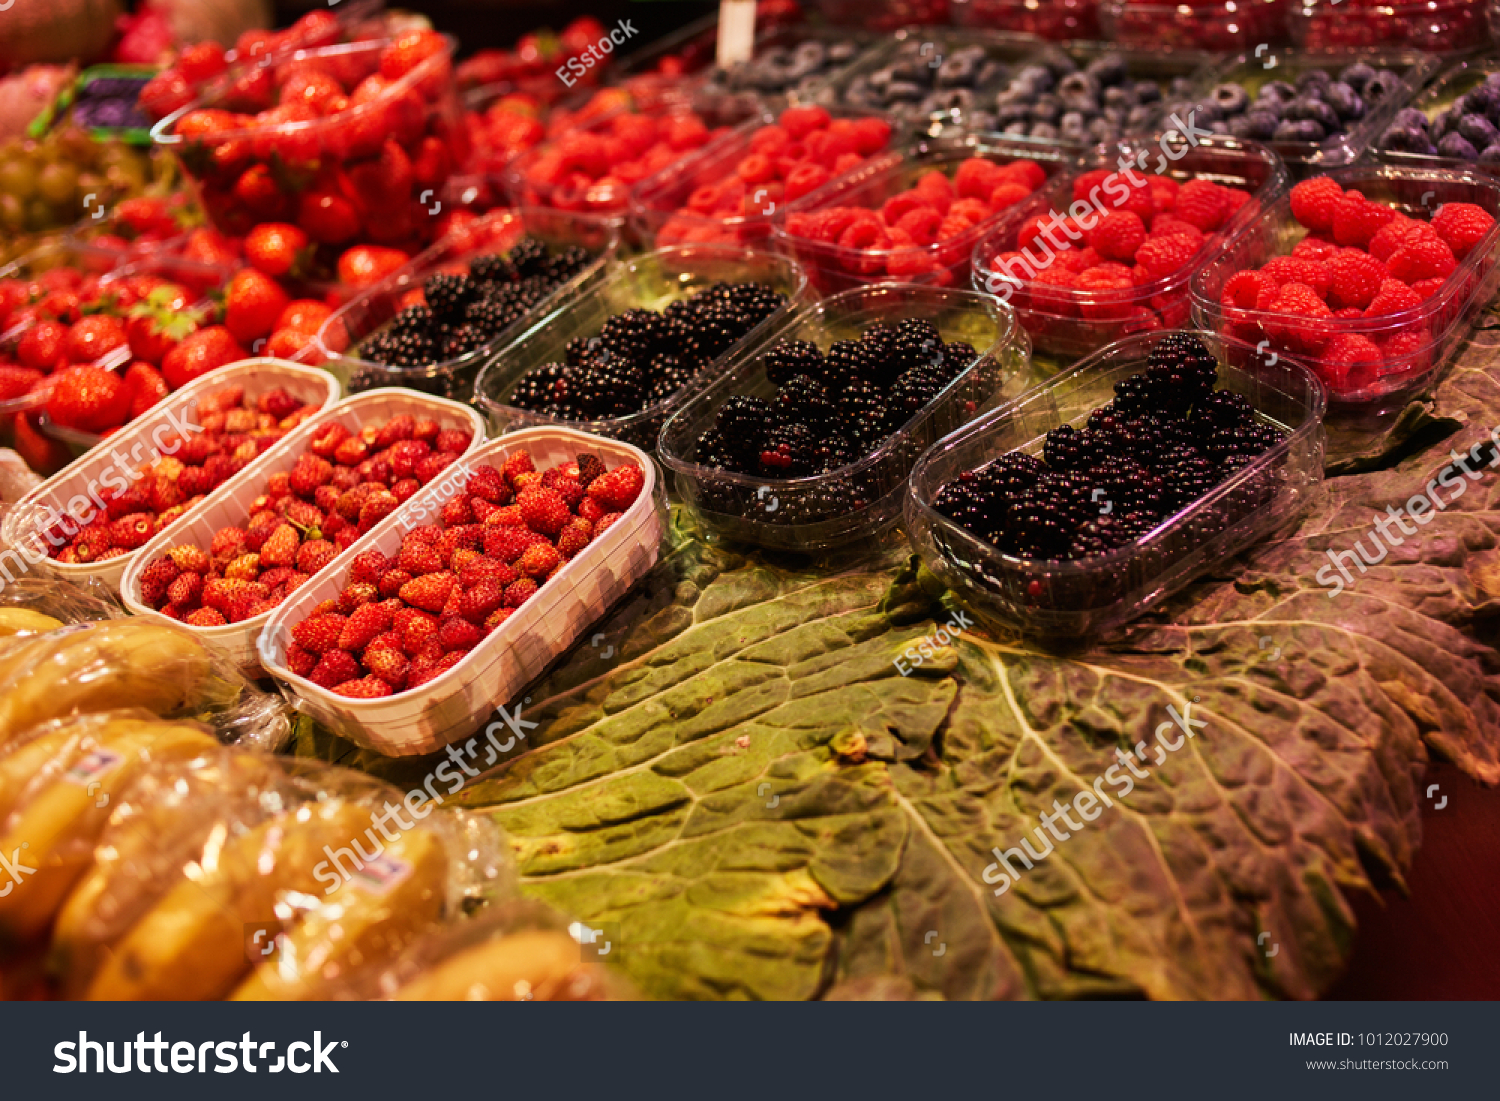 Summer Organic Berries On Display Agriculture Stock Photo (Royalty ...